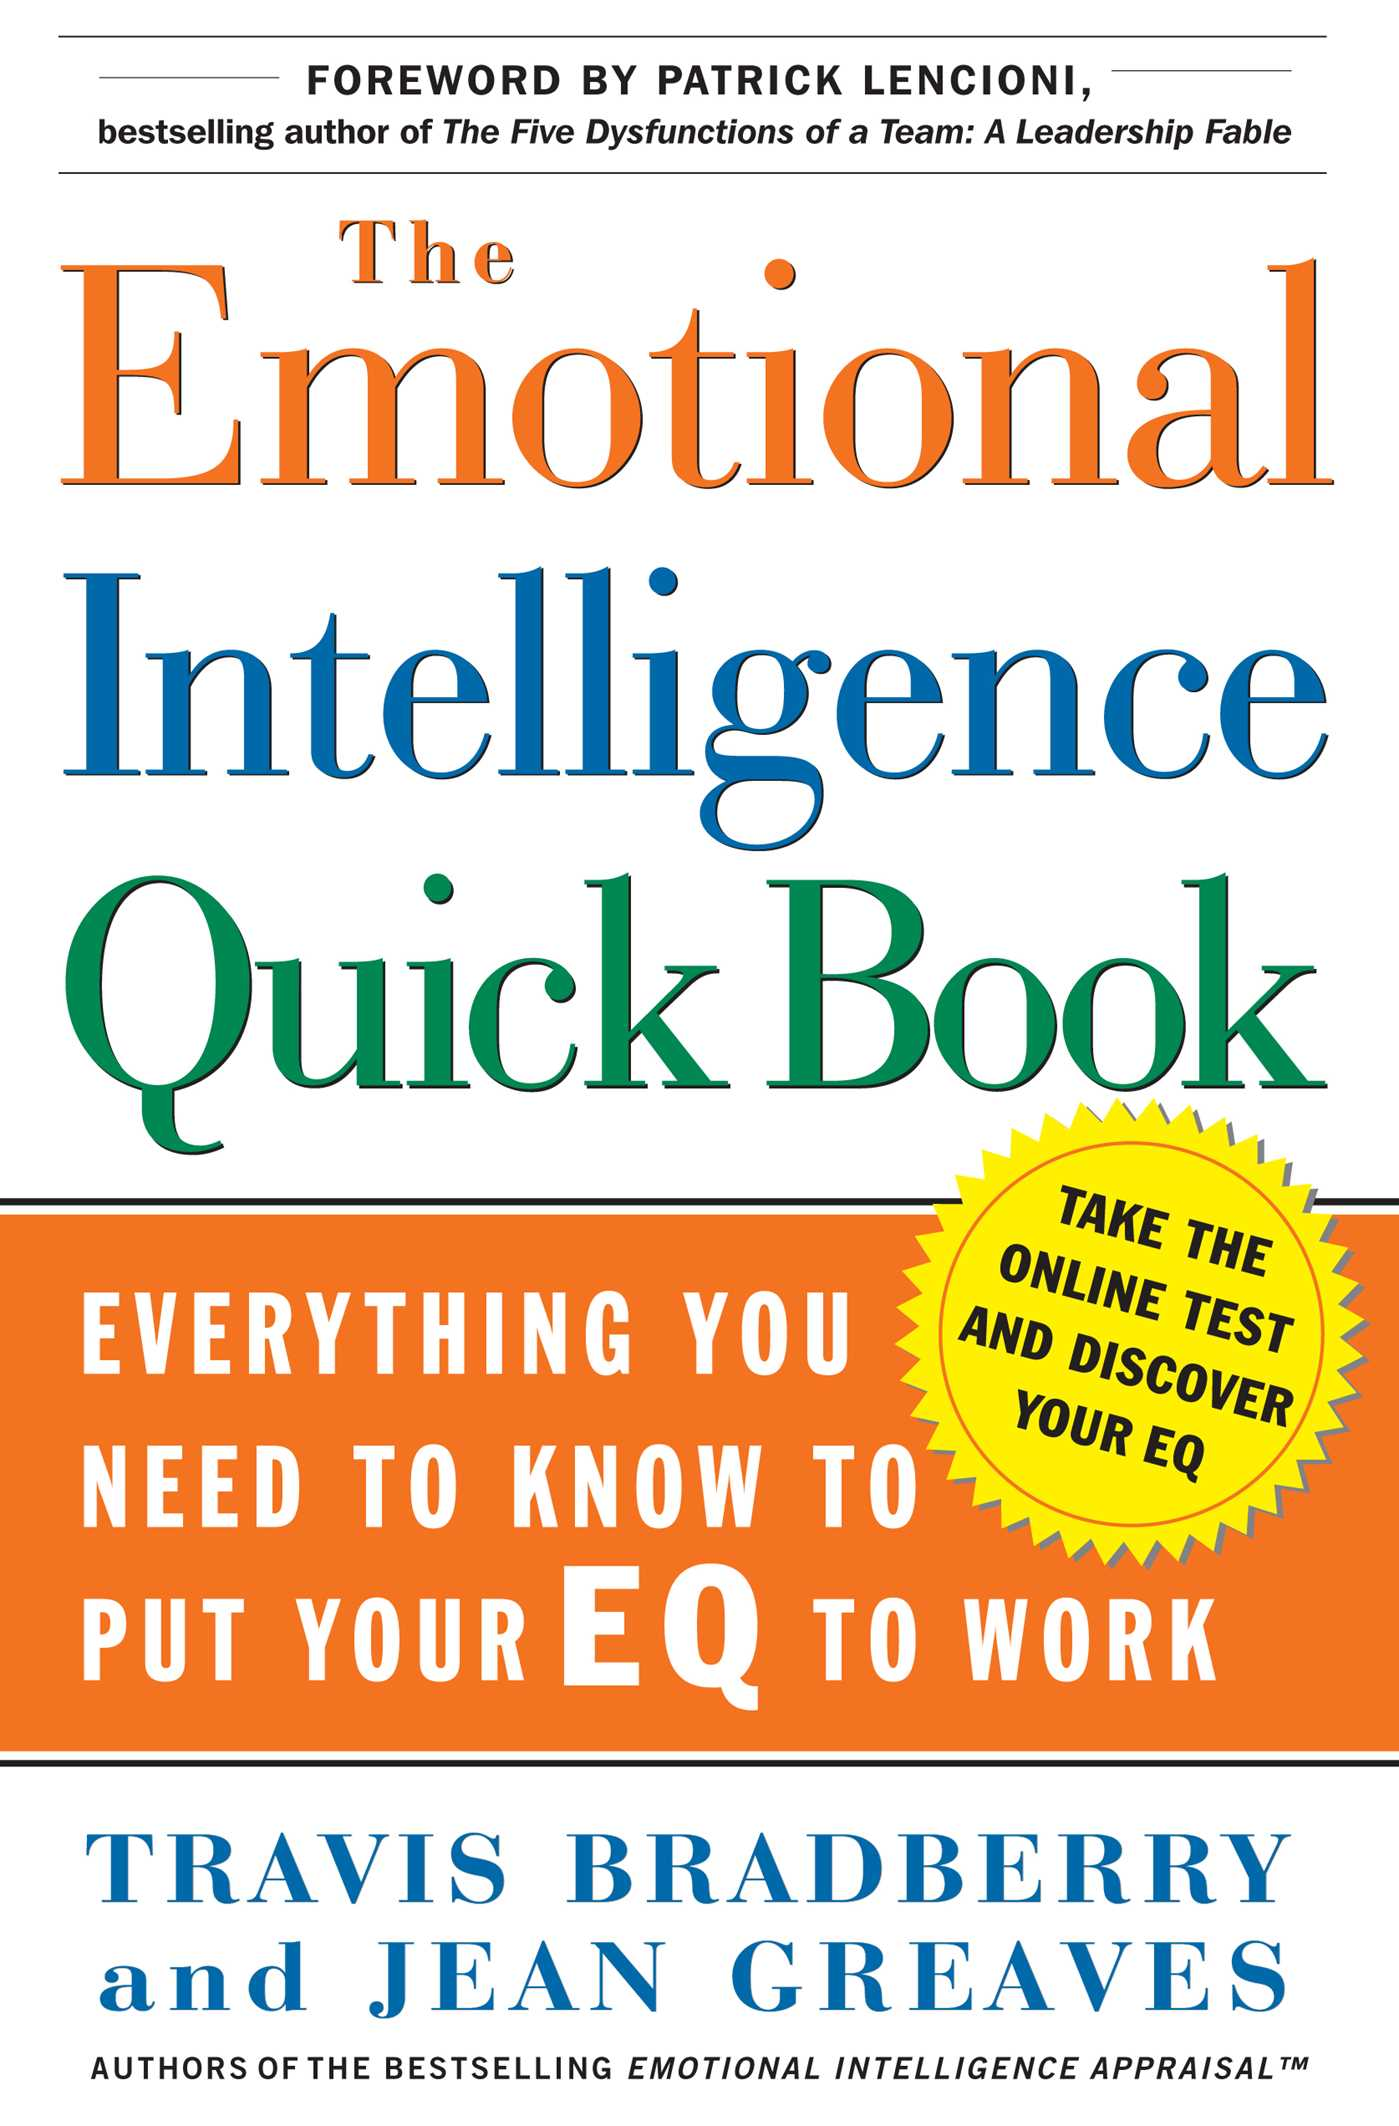 Download Ebook The Emotional Intelligence Quick Book by Travis Bradberry Pdf